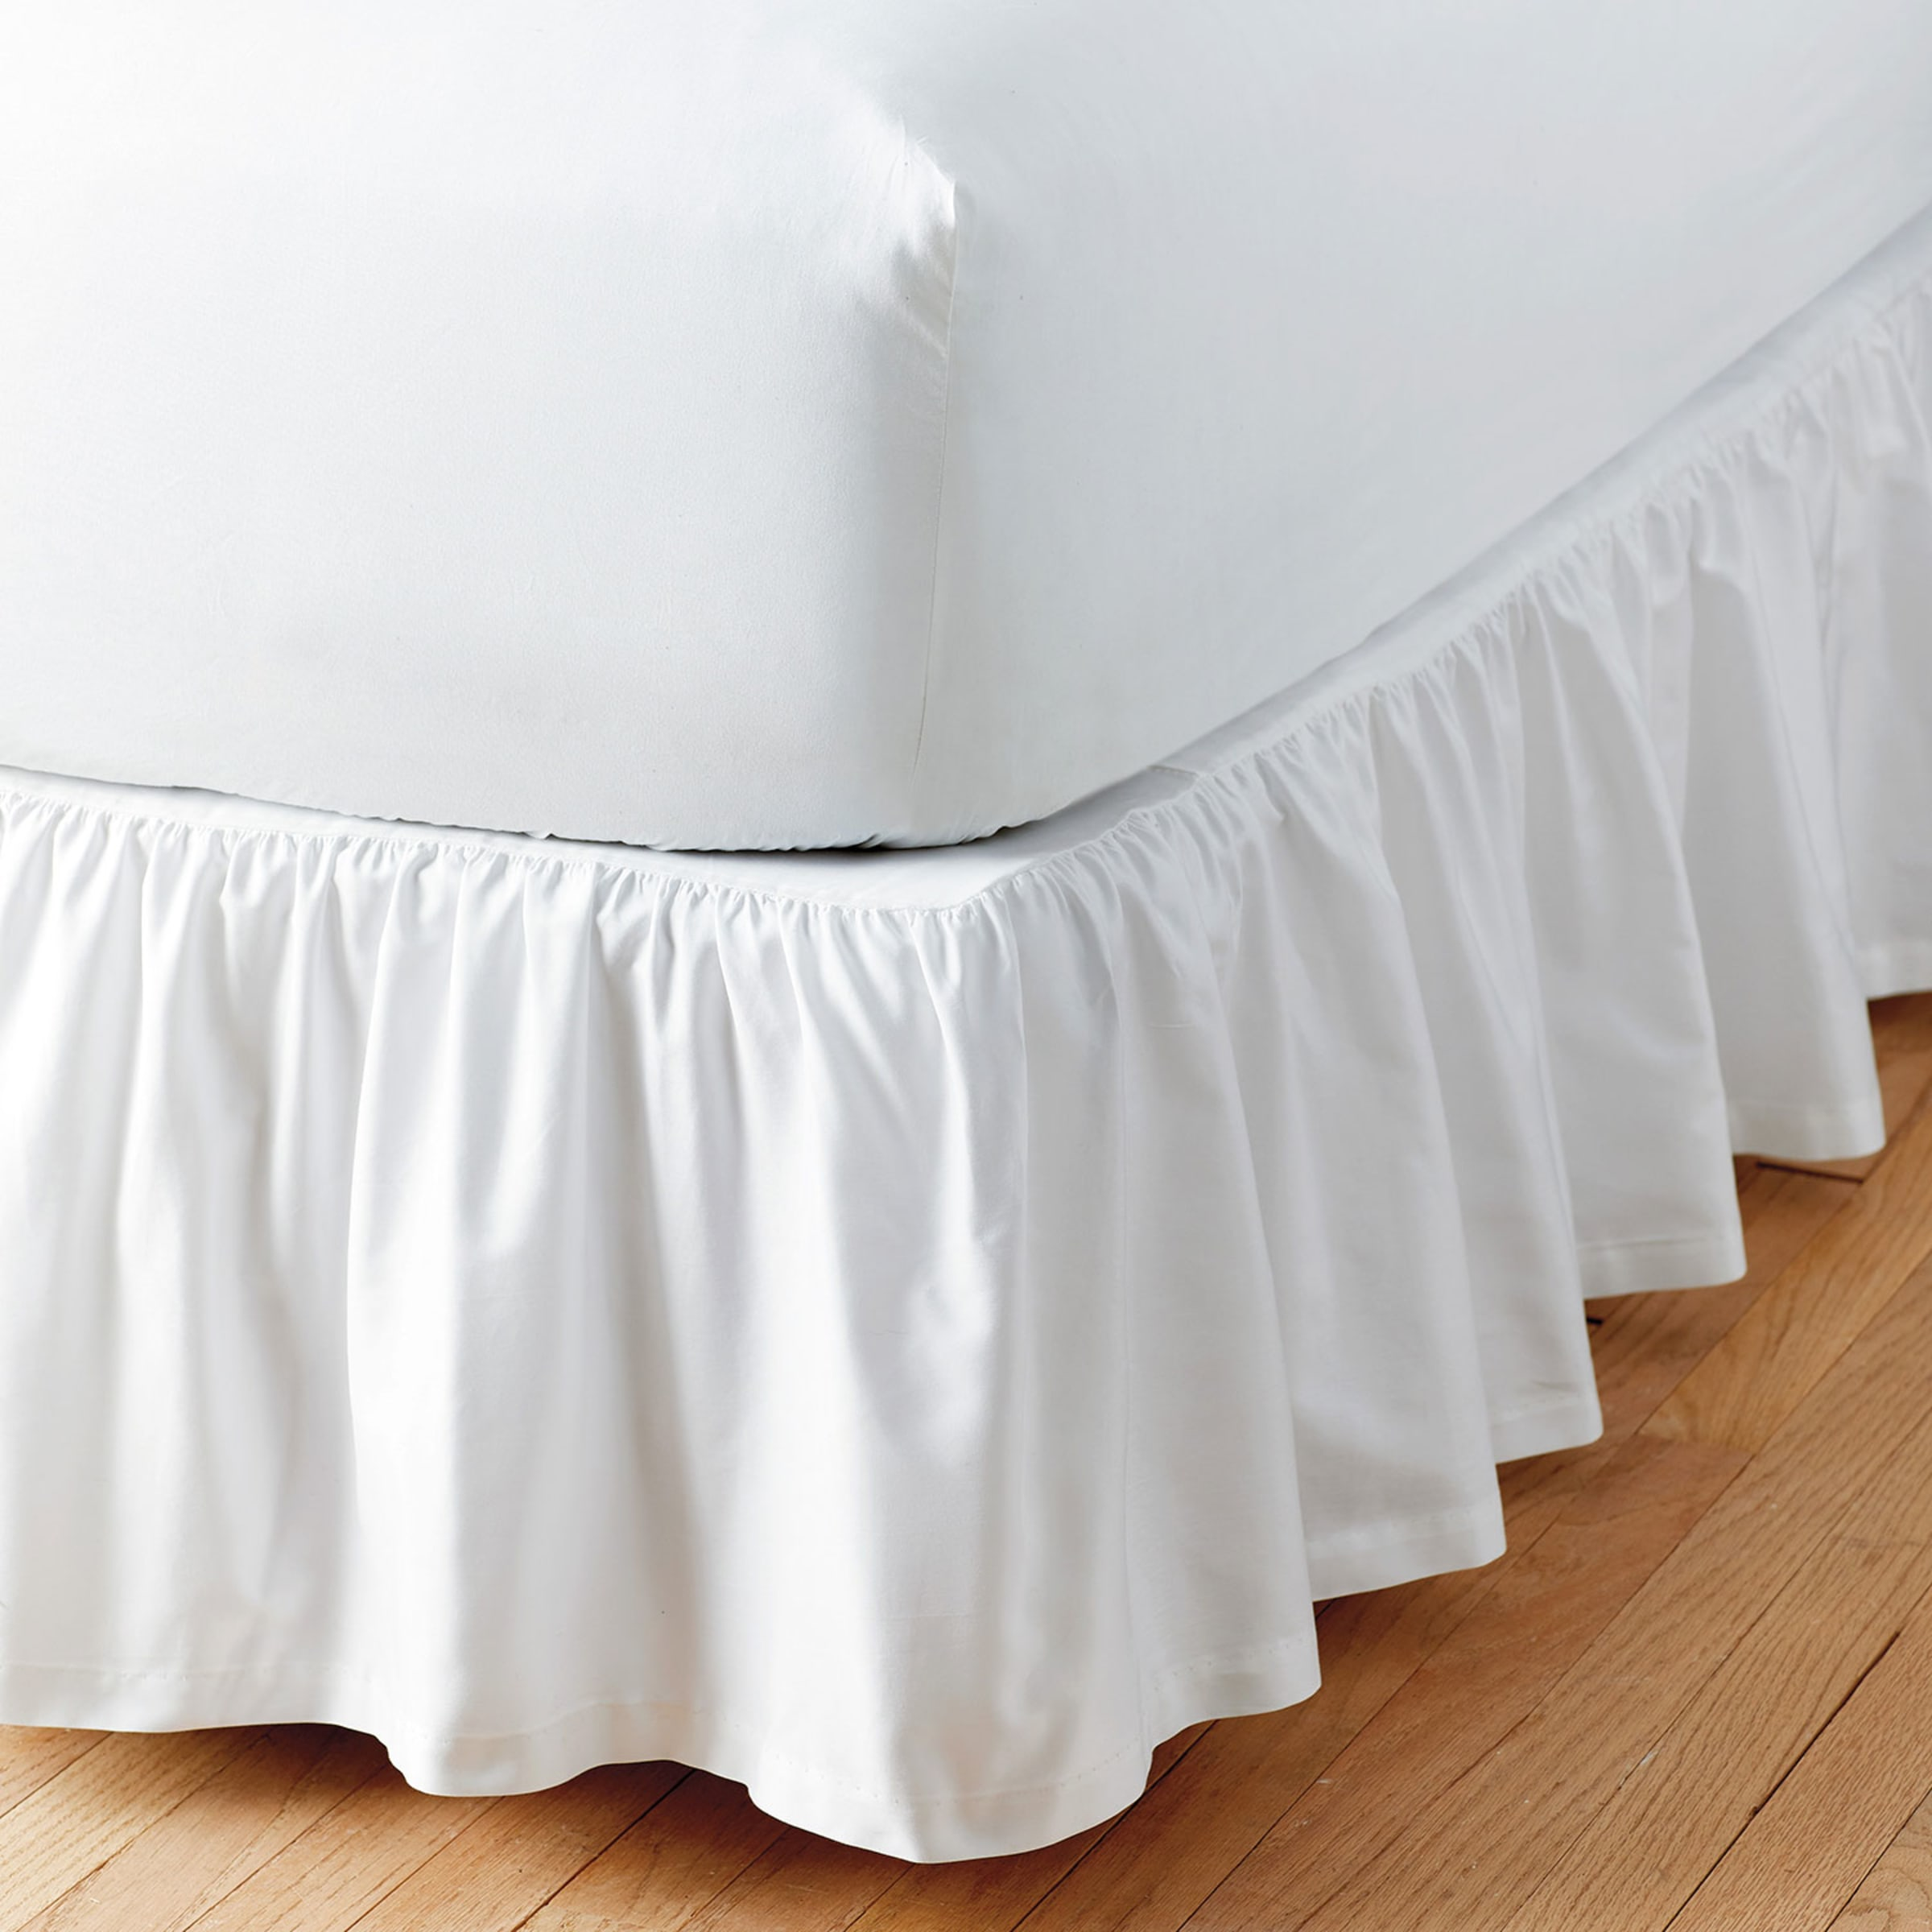 Simple Tuck Gathered Cotton Bed Skirt The Company Store